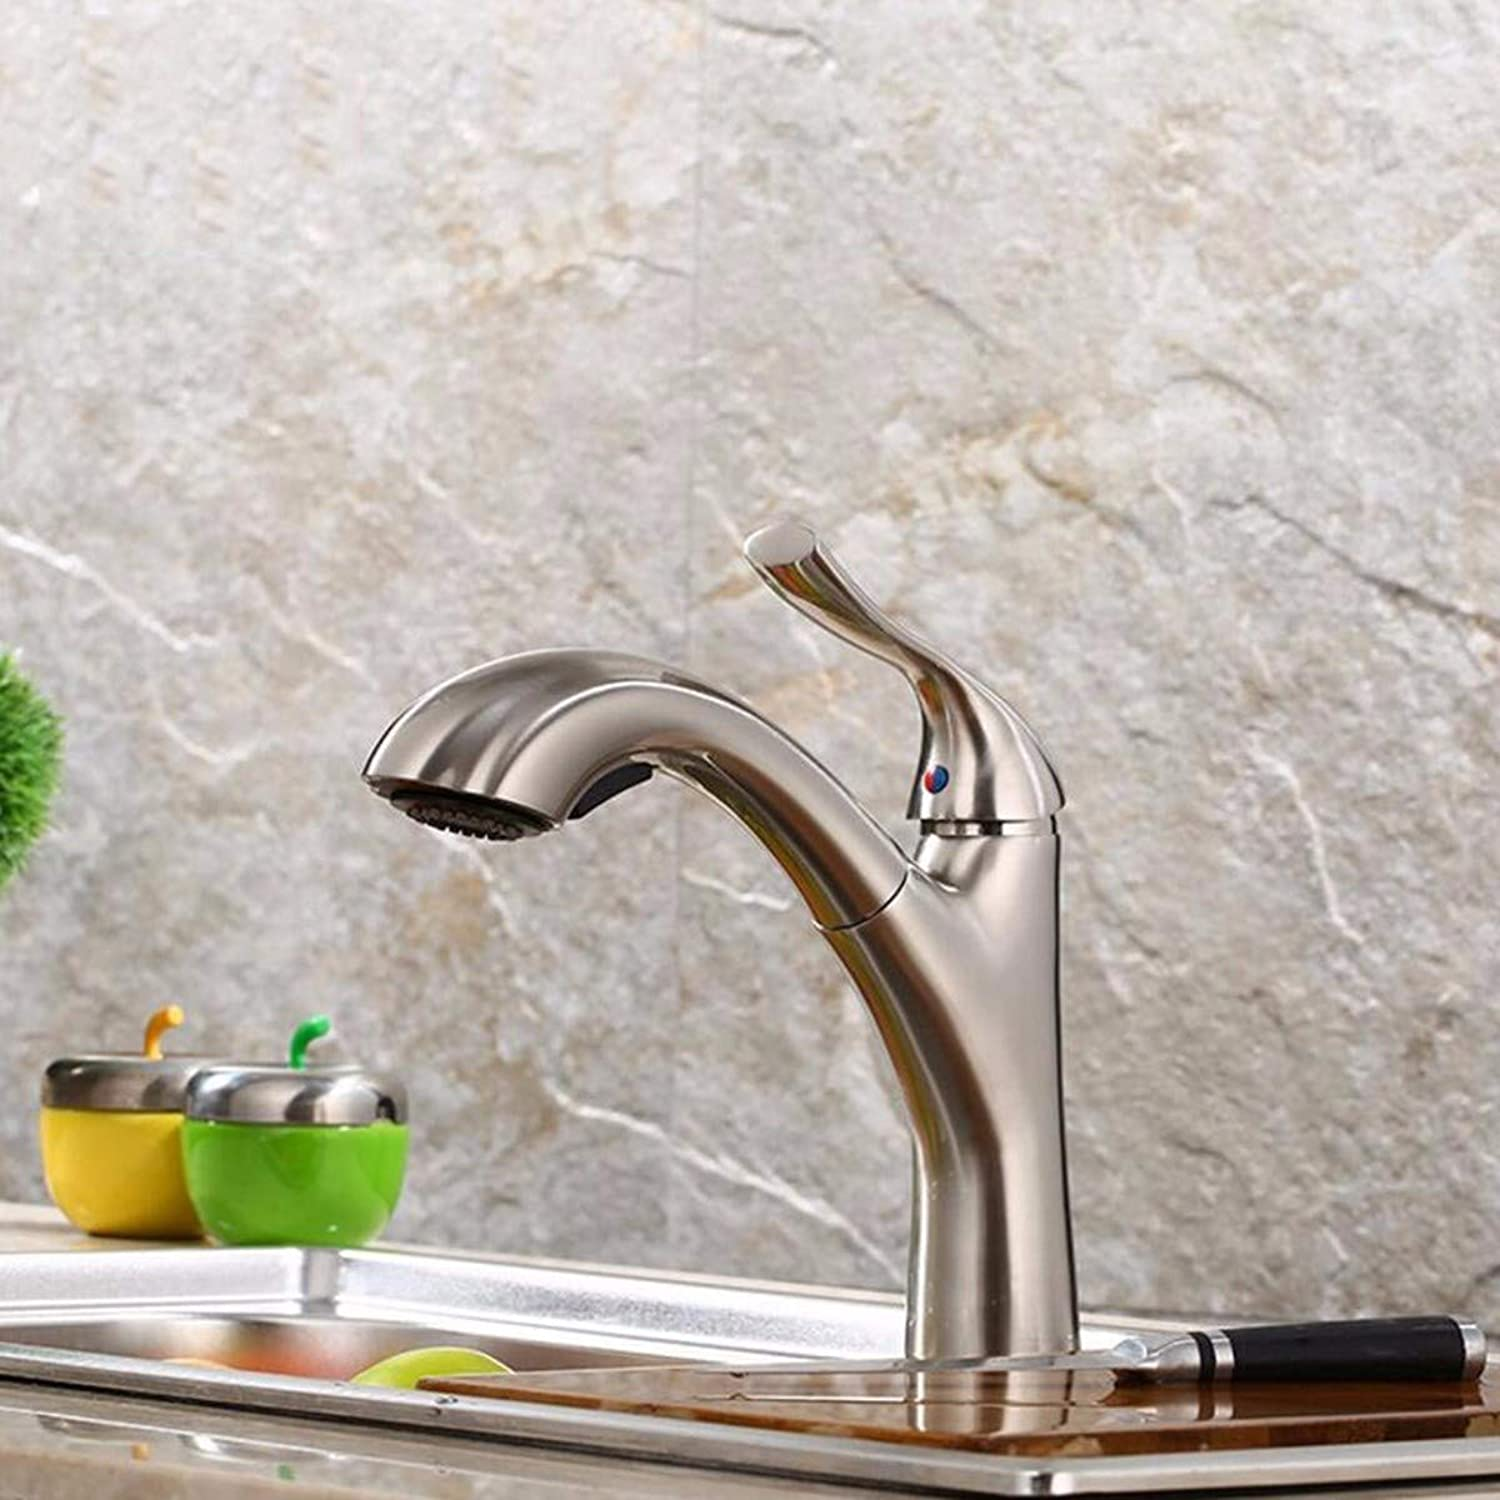 QPGGP-Kitchen mixer Kitchen faucet with a single hot and cold sink faucet